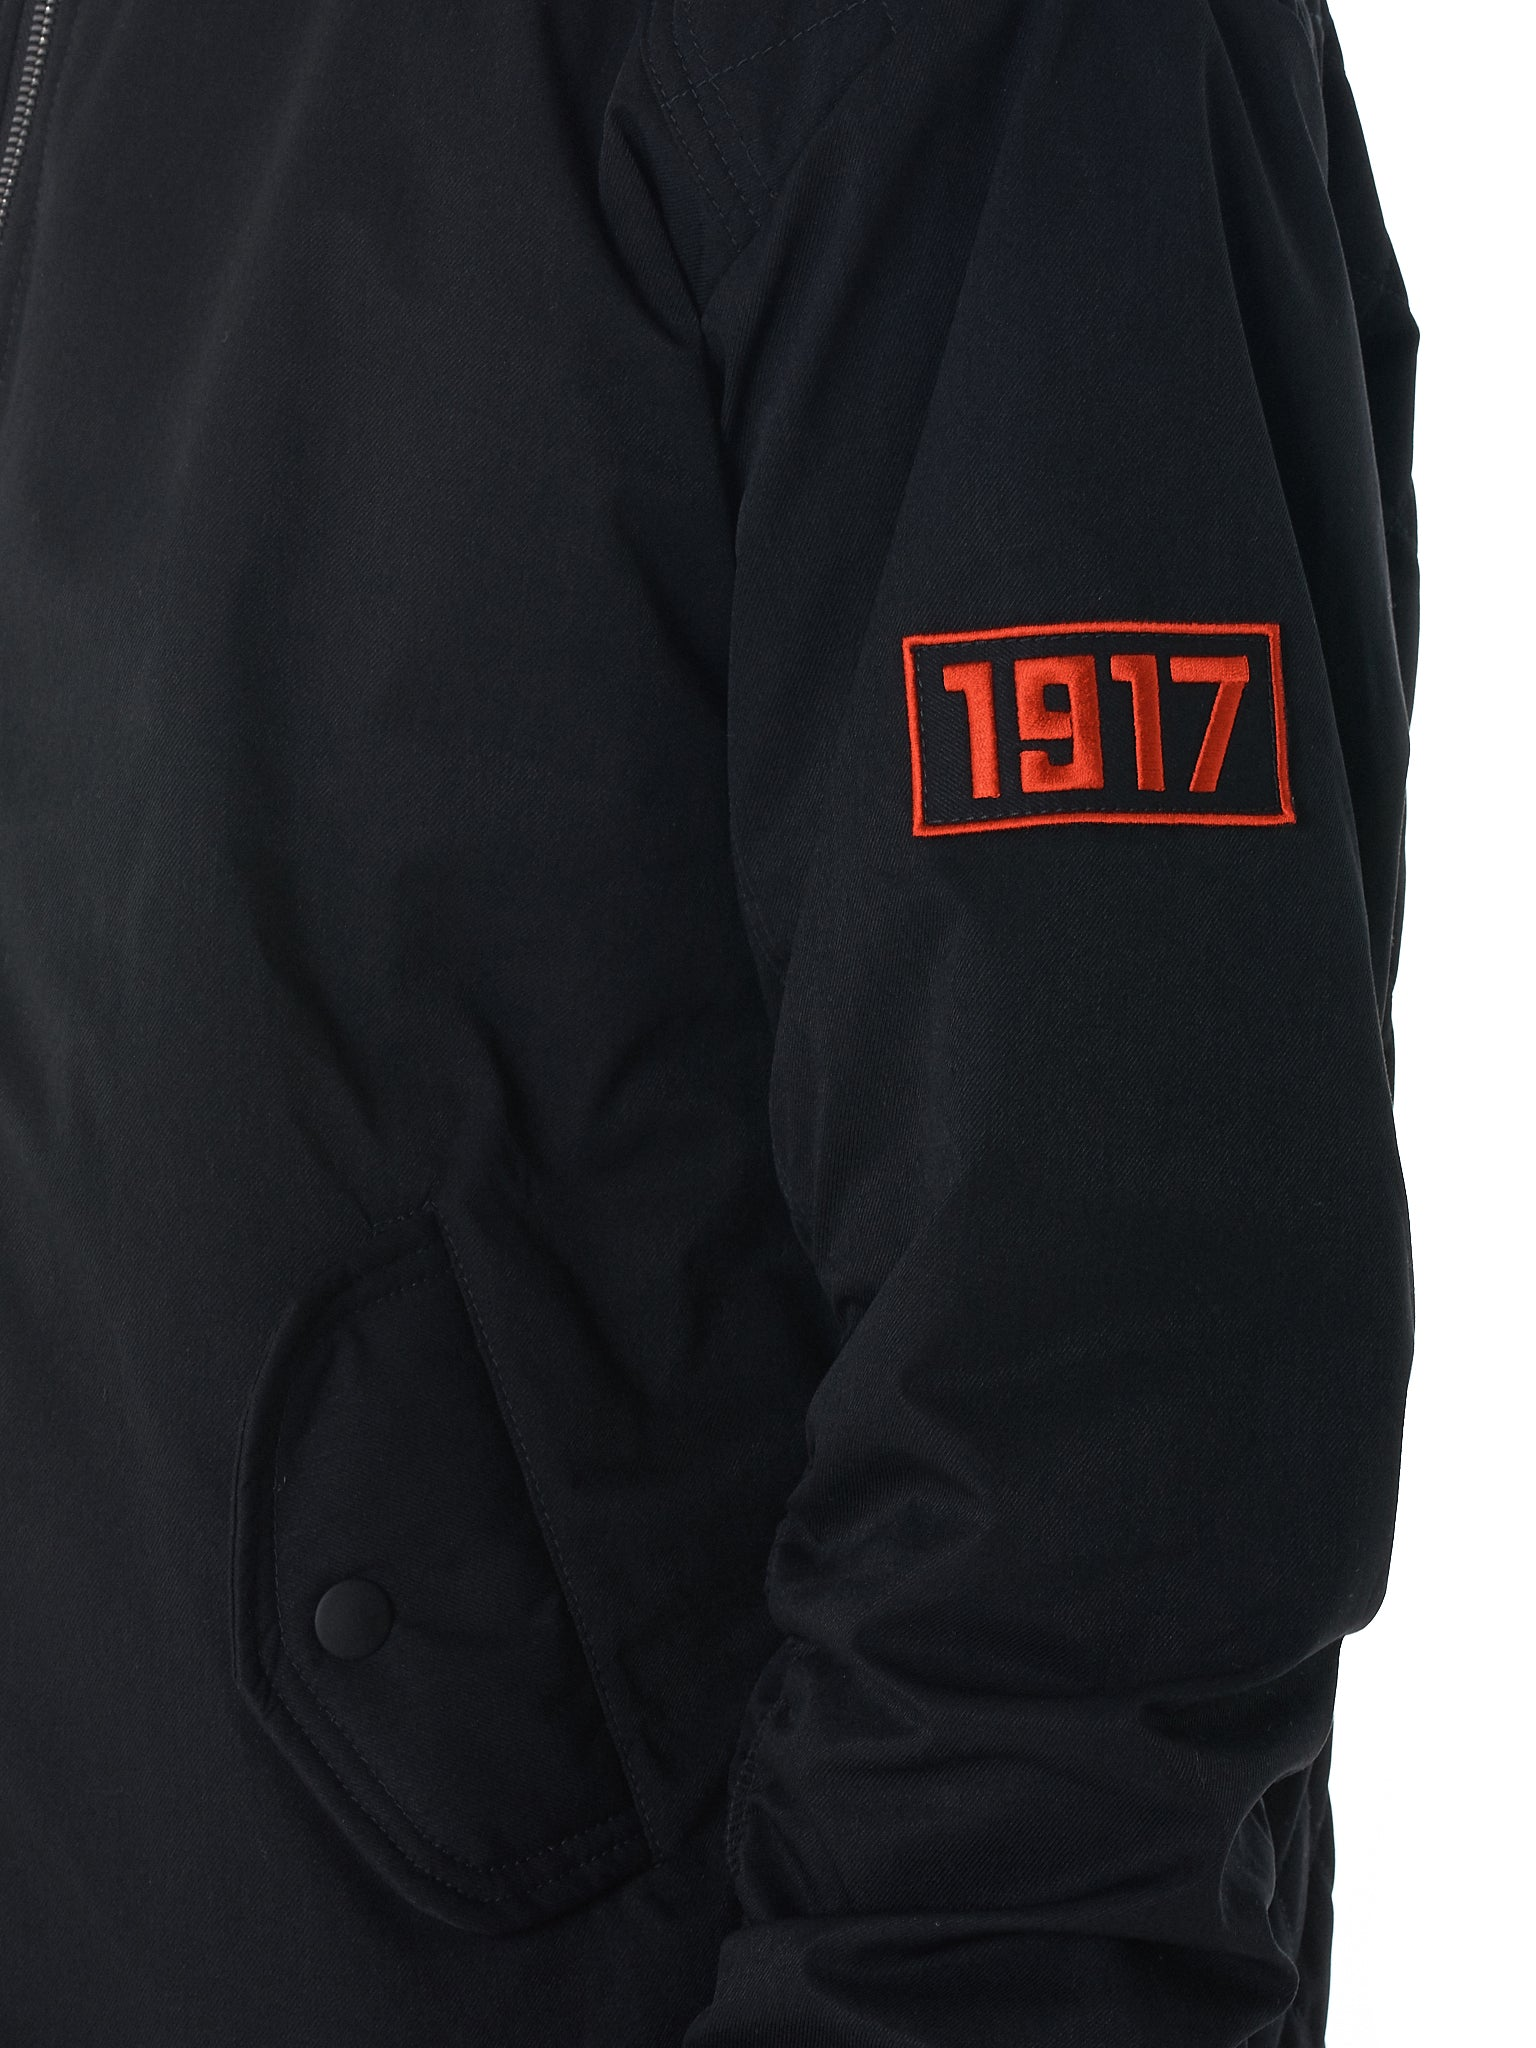 Sovetsky1917 Bomber Jacket - Hlorenzo Detail 1